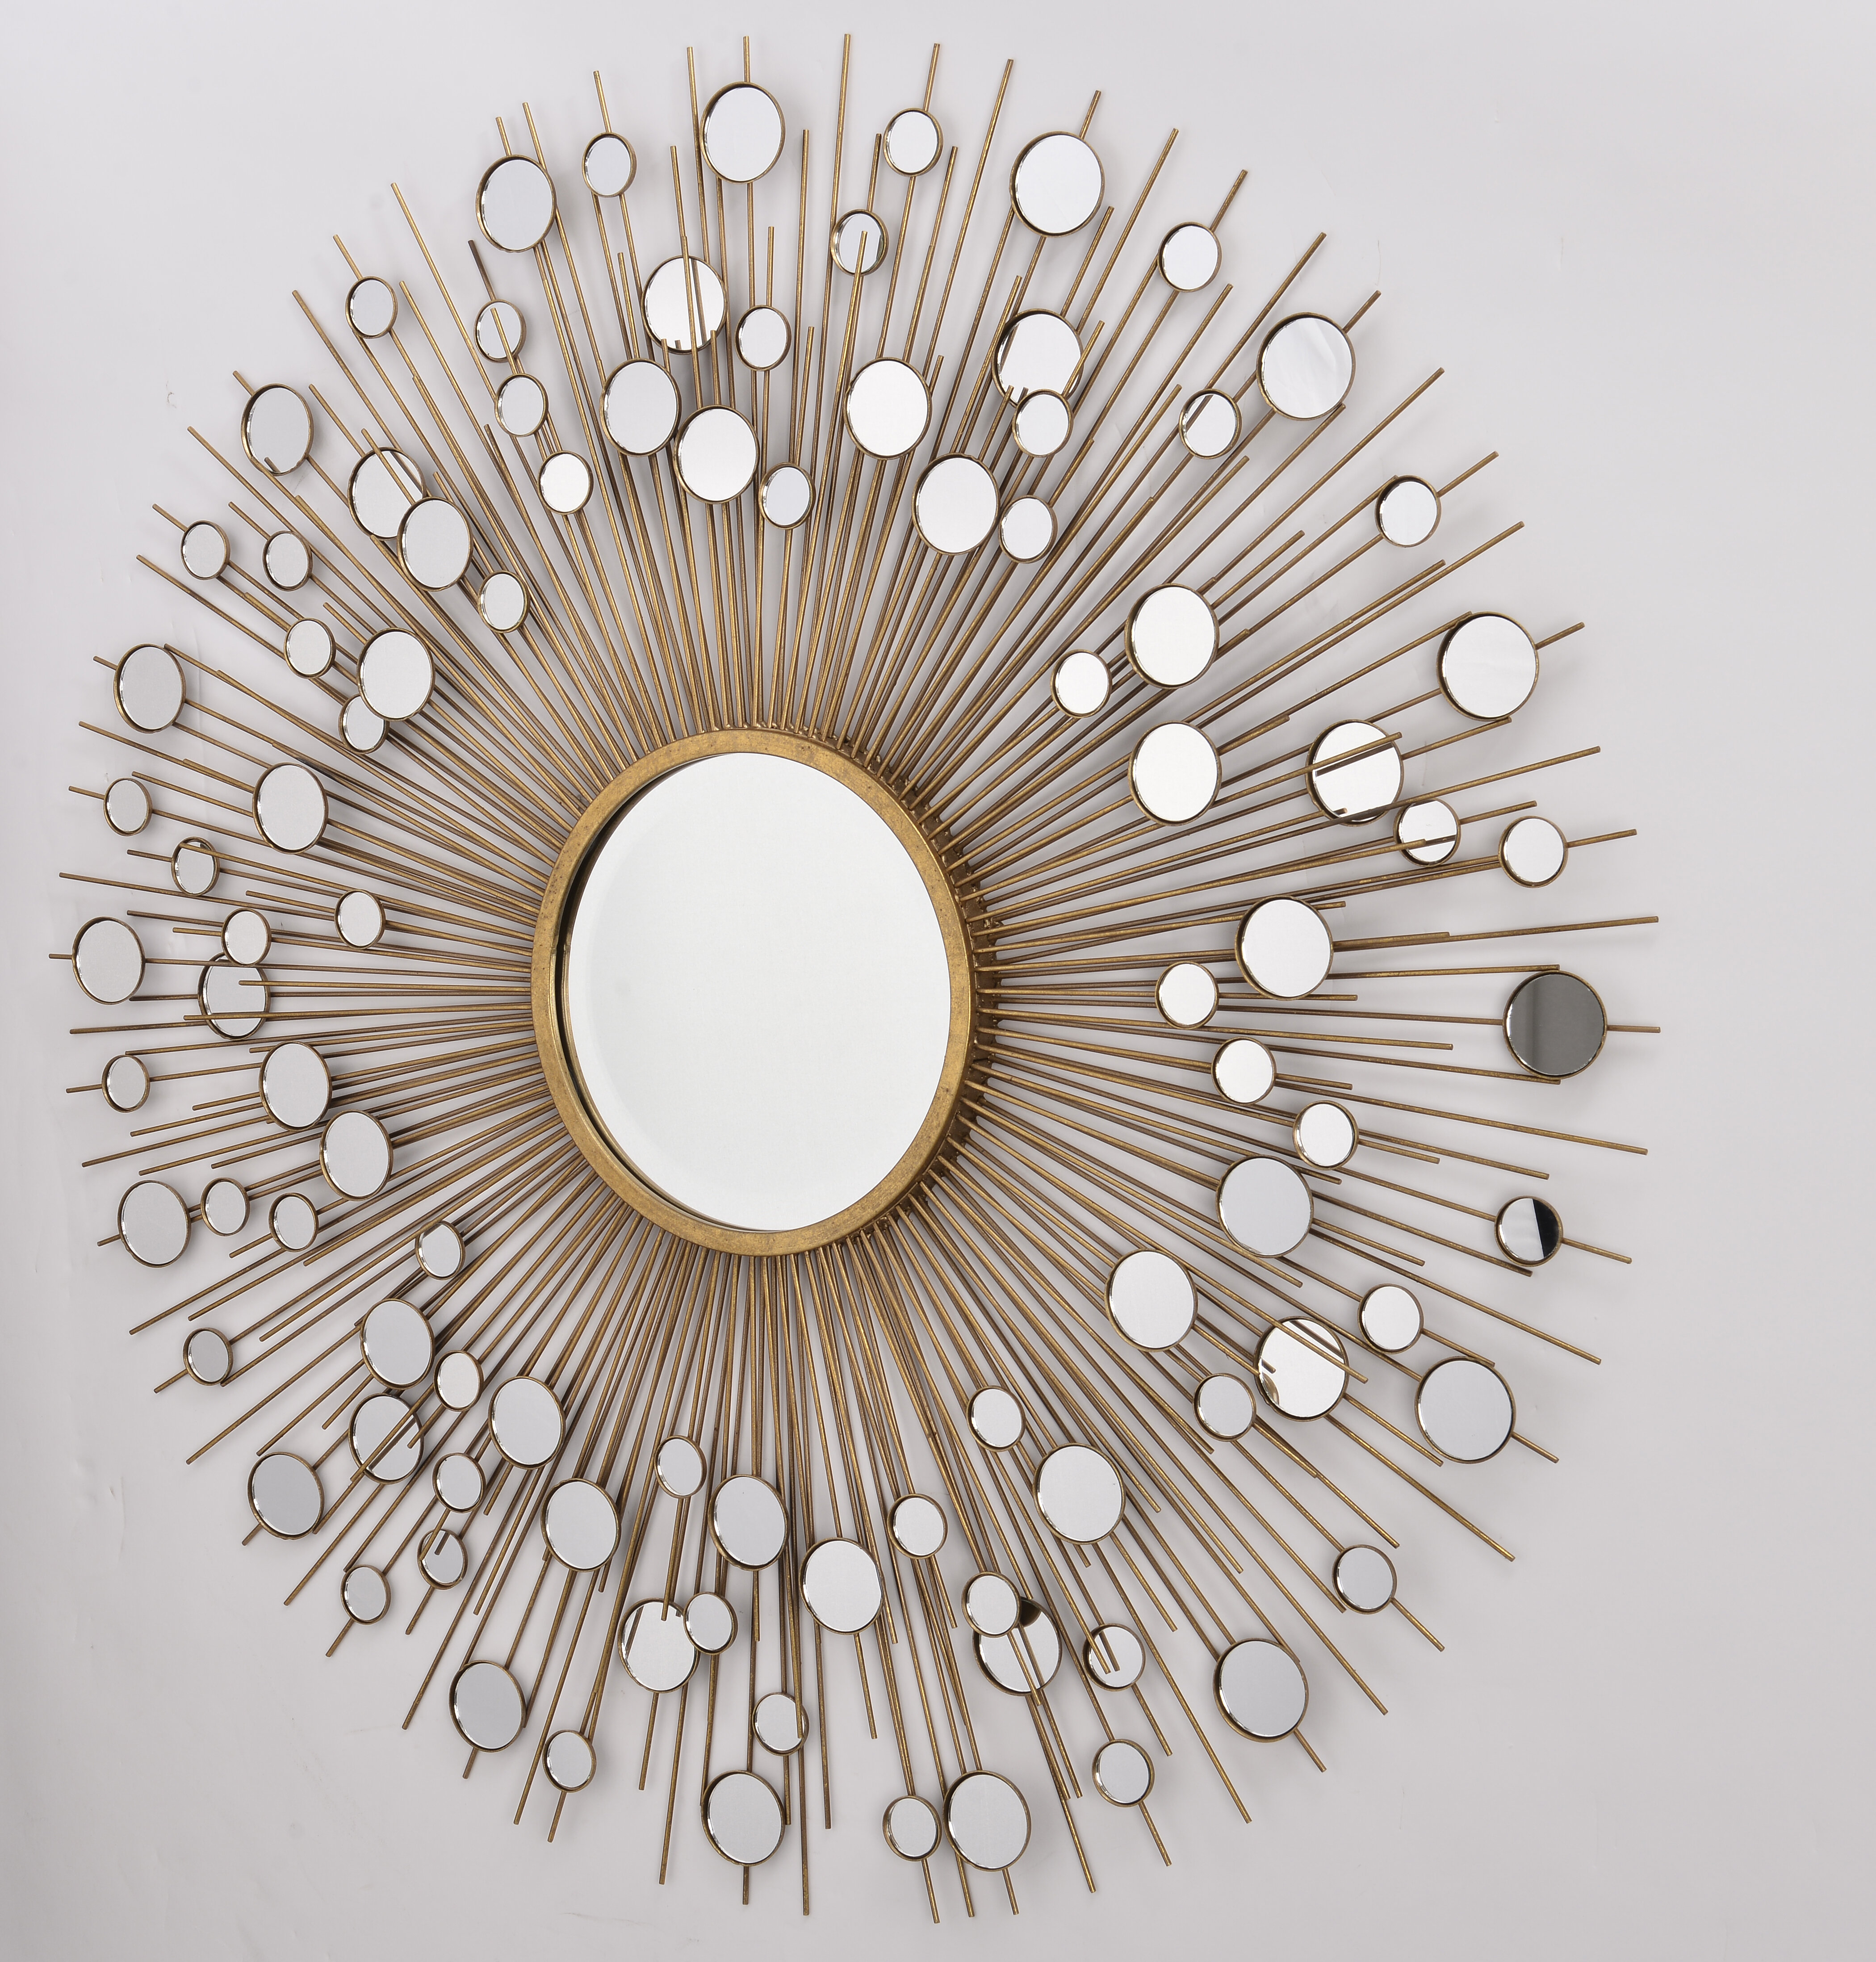 20 Ideas Of Rings Wall Decorwrought Studio In Rings Wall Decor By Wrought Studio (Photo 2 of 30)